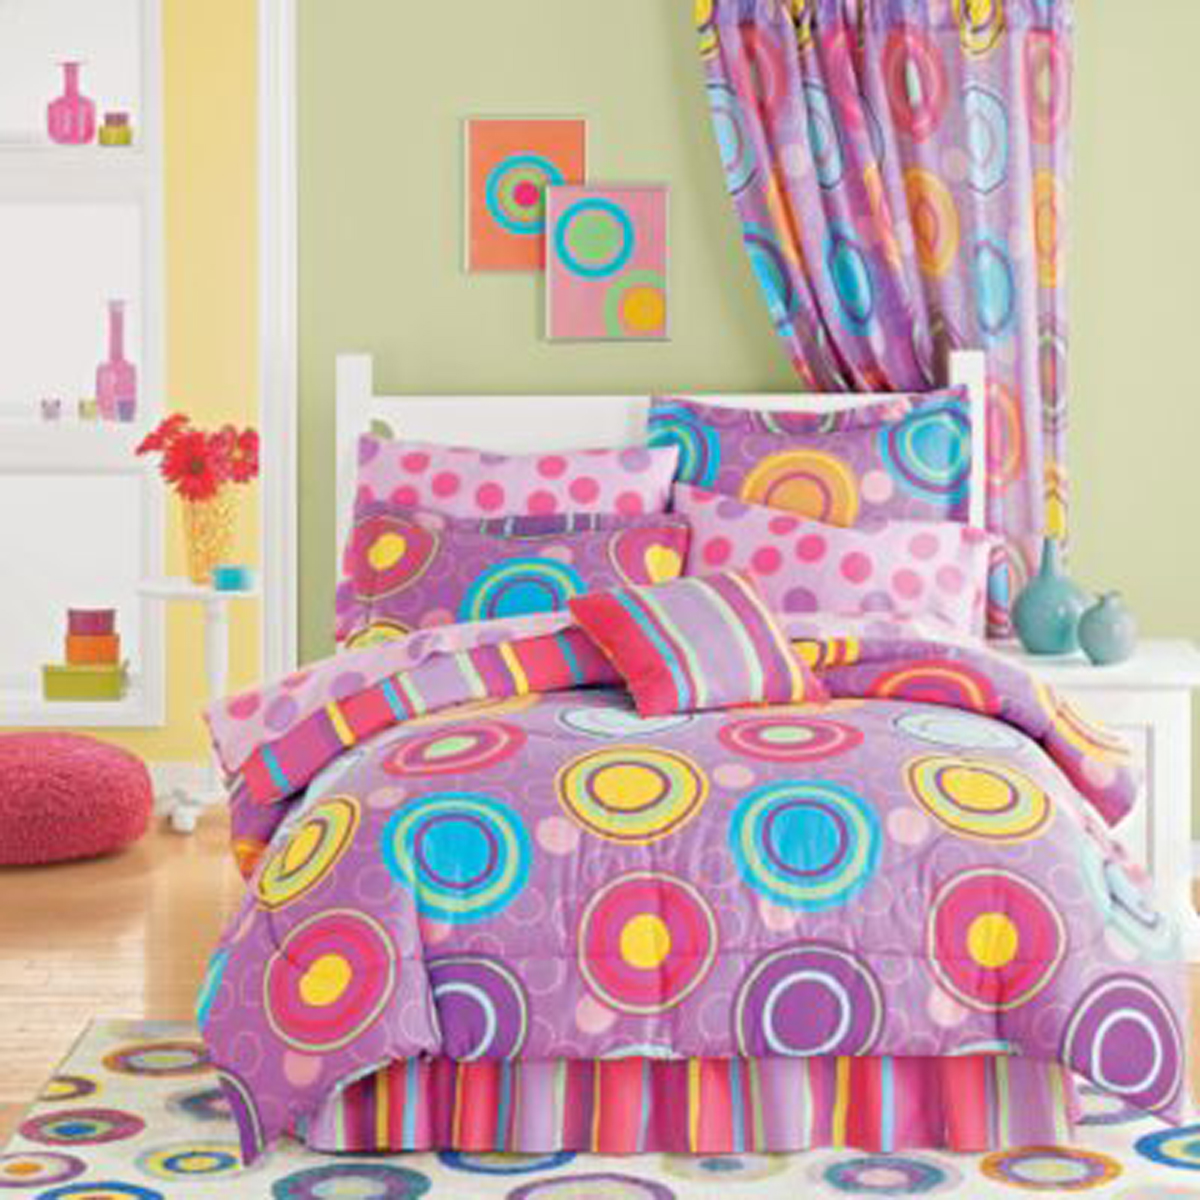 Decorating ideas for kids rooms decoration news - Kids bedroom decoration ideas ...